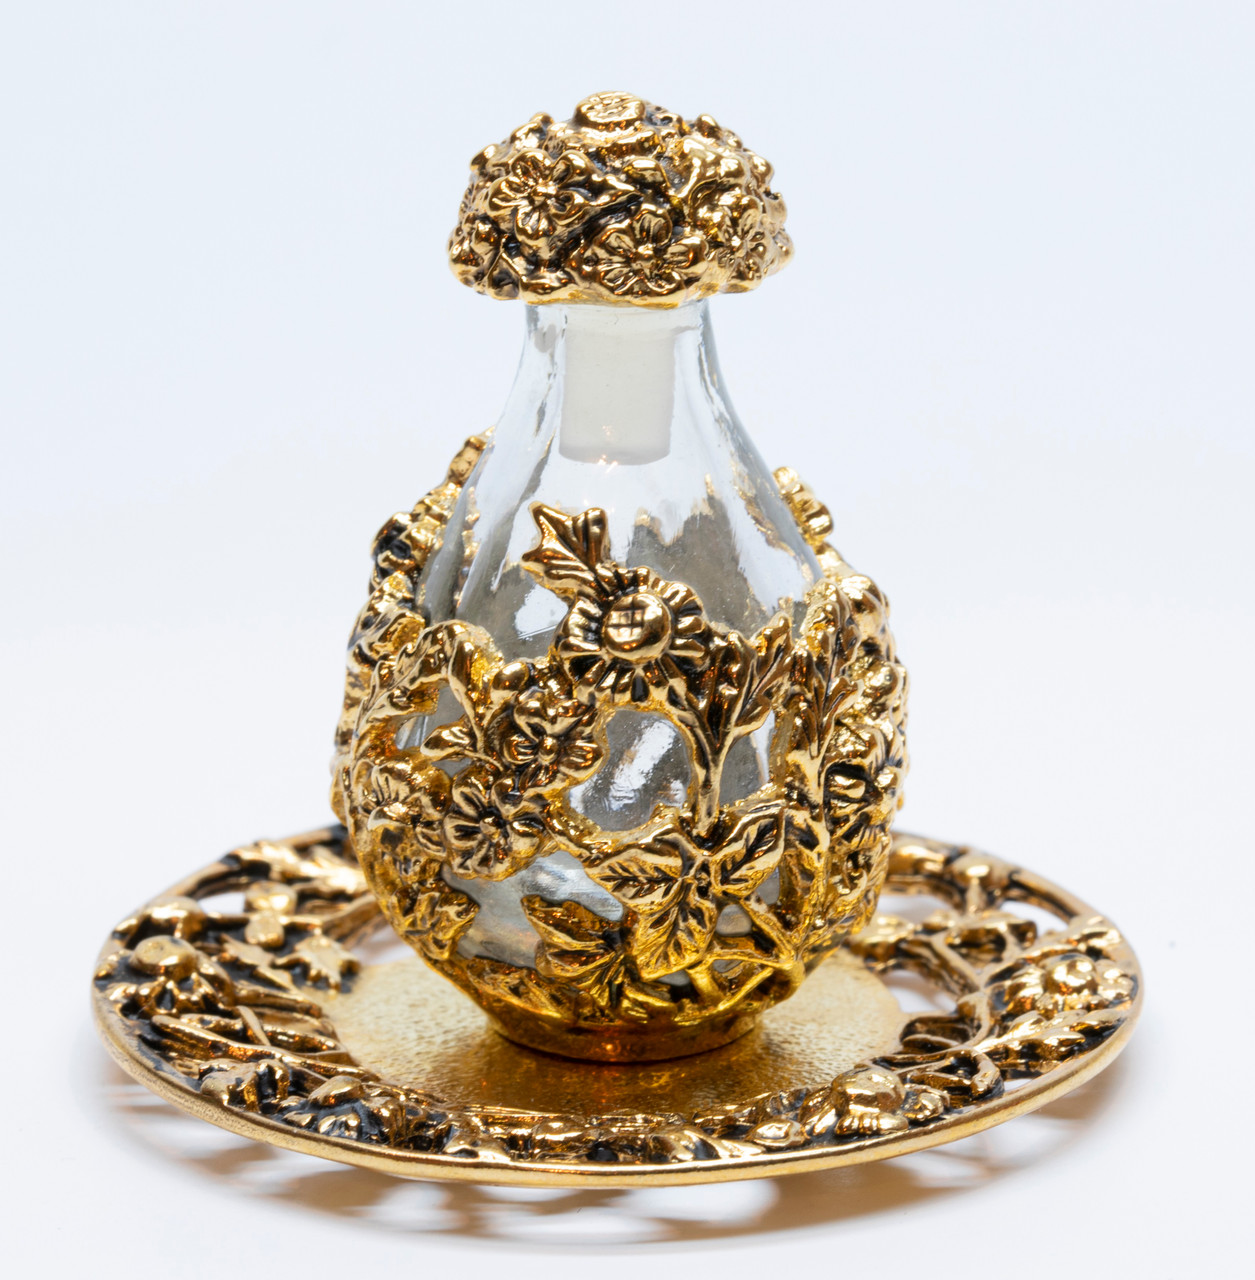 Gold with Clear Glass Victorian Tear Bottle - shown on Optional Gold Tray  with Filigree Rim - Sold Separately